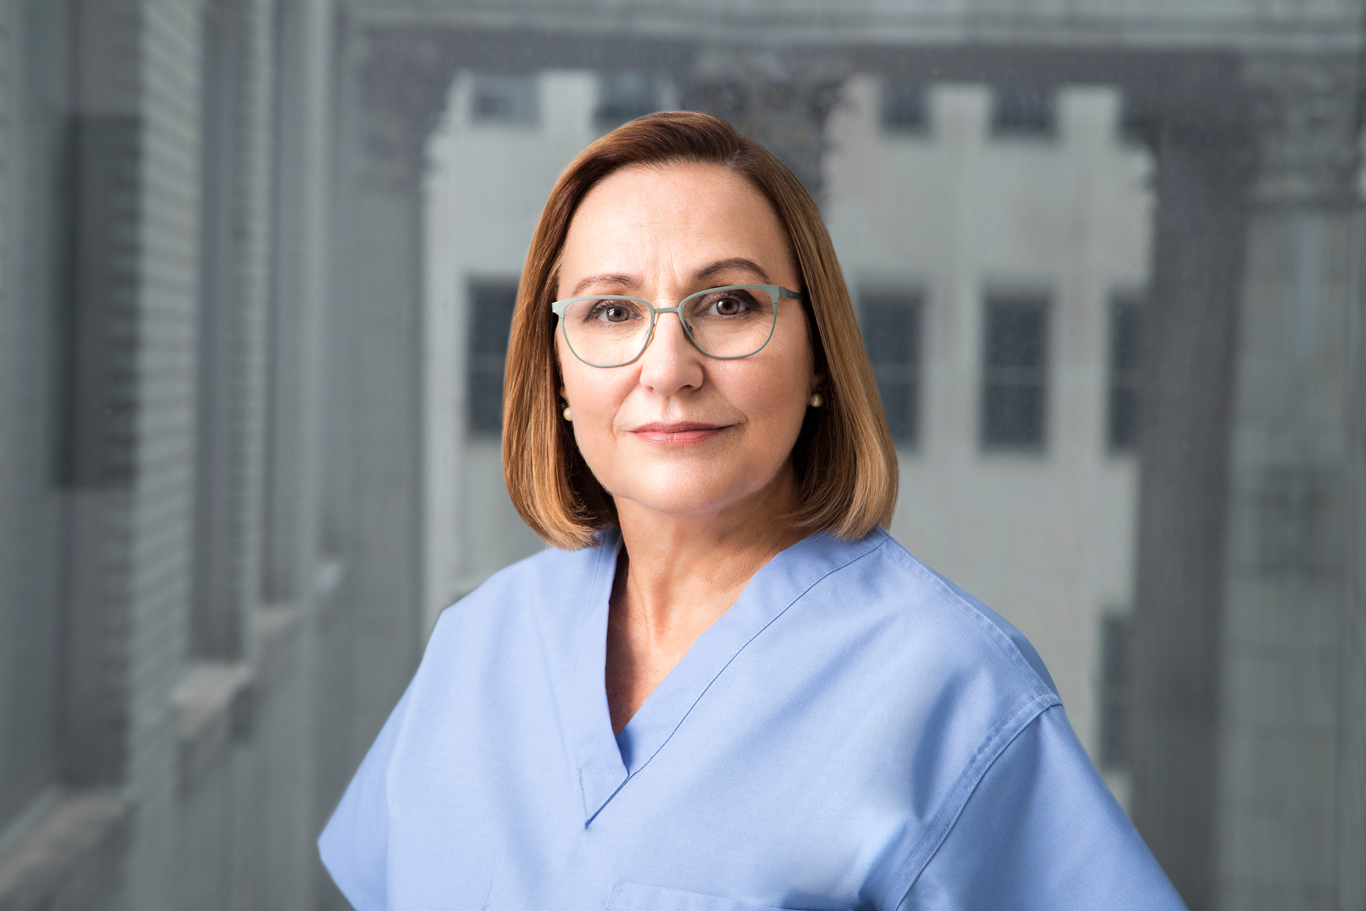 Maria Bertero is an expert in family planning clinic services such as IUI insemination